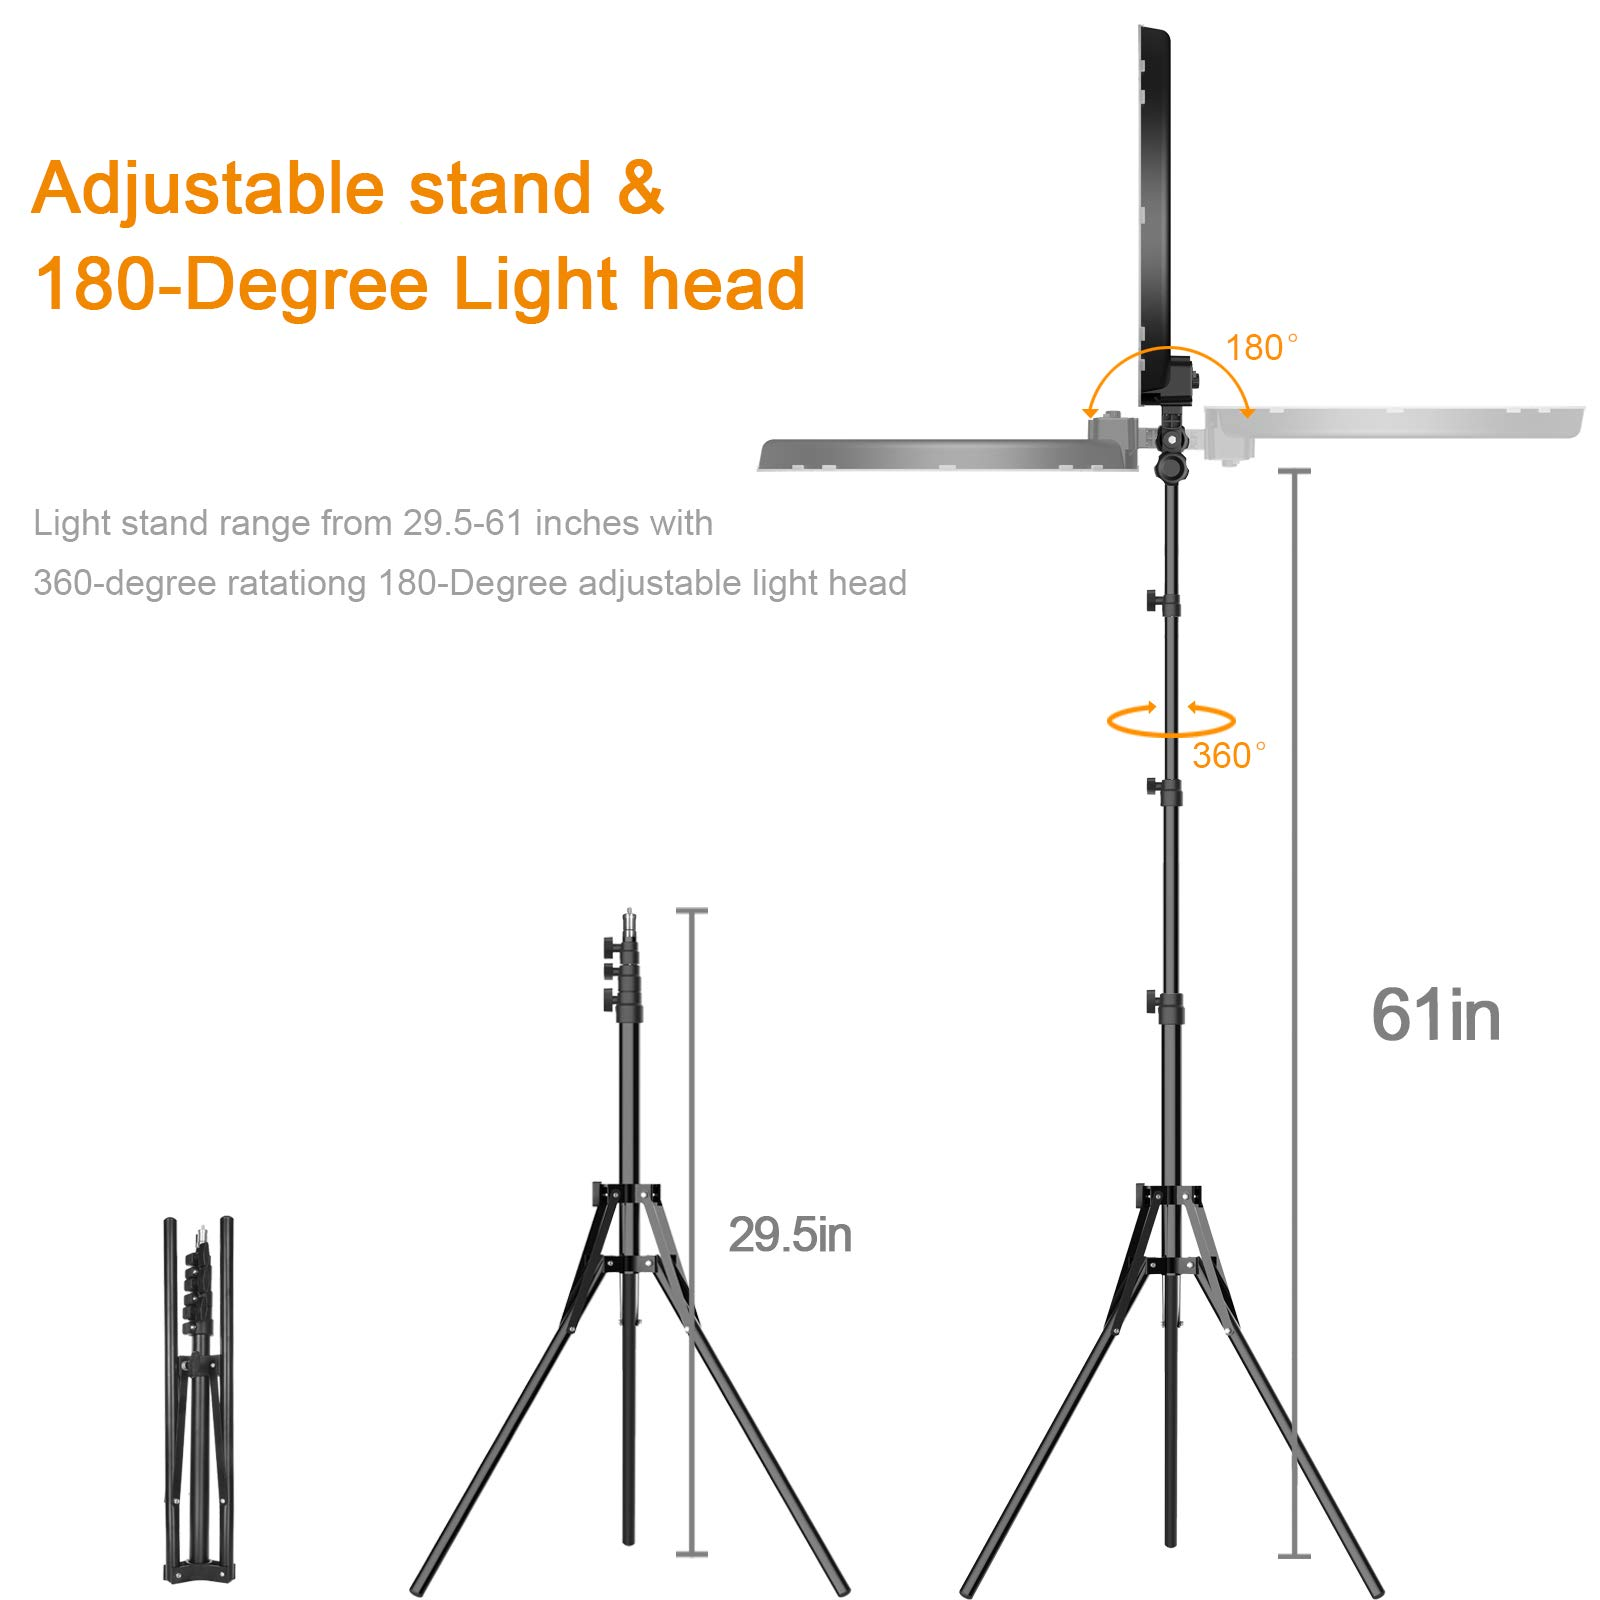 Ring Light Kit:18'' 48cm Outer 55W 5500K Dimmable LED Ring Light, Light Stand, Carrying Bag for Camera,Smartphone,YouTube,Self-Portrait Shooting by IVISII (Image #7)